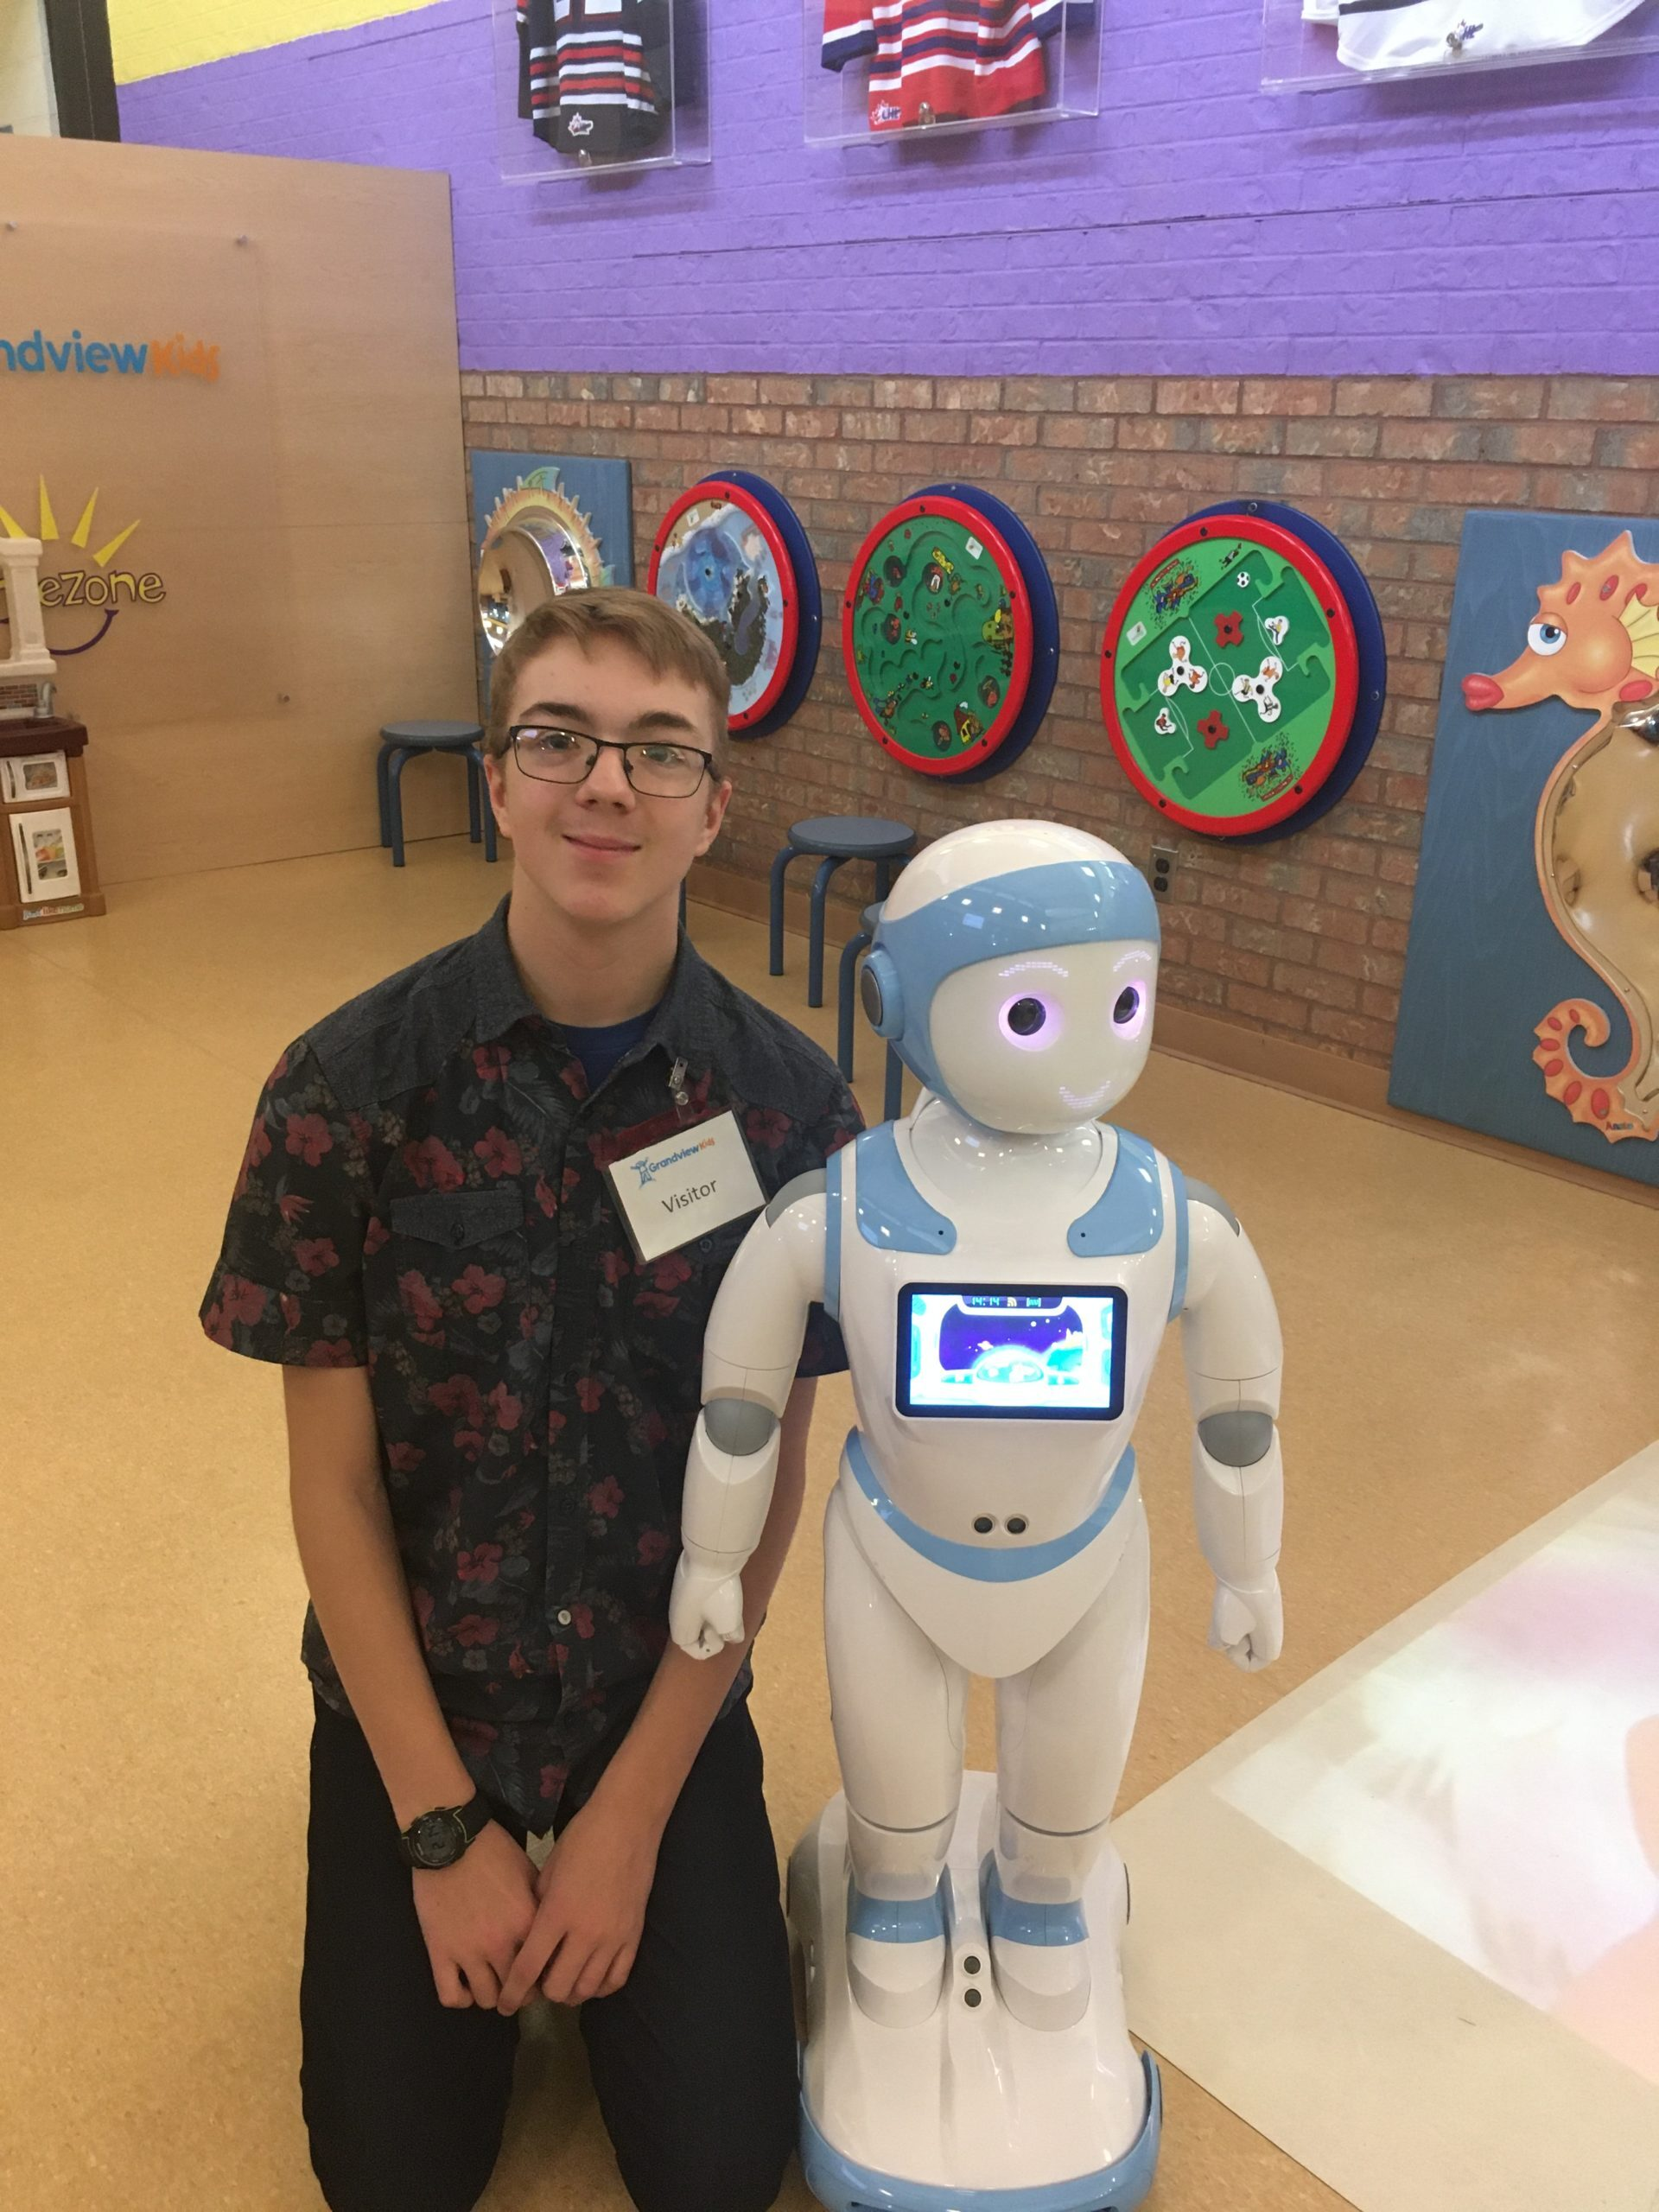 Joy the robot posing with Ethan at Grandview